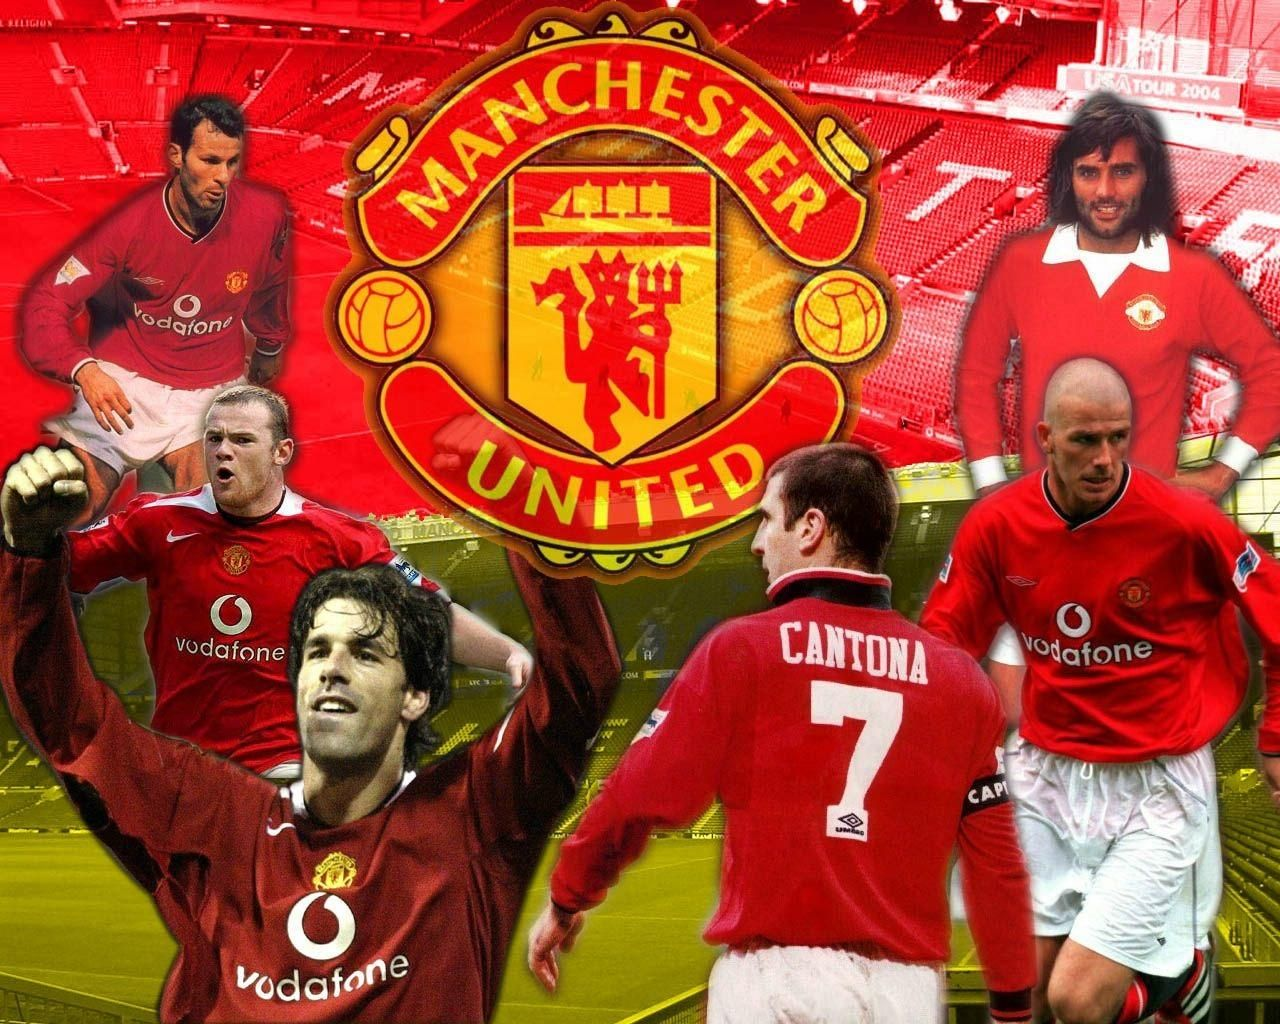 Manchester united wallpapers for free 969355183g 12801024 manchester united wallpapers for free 969355183g 1280 voltagebd Image collections